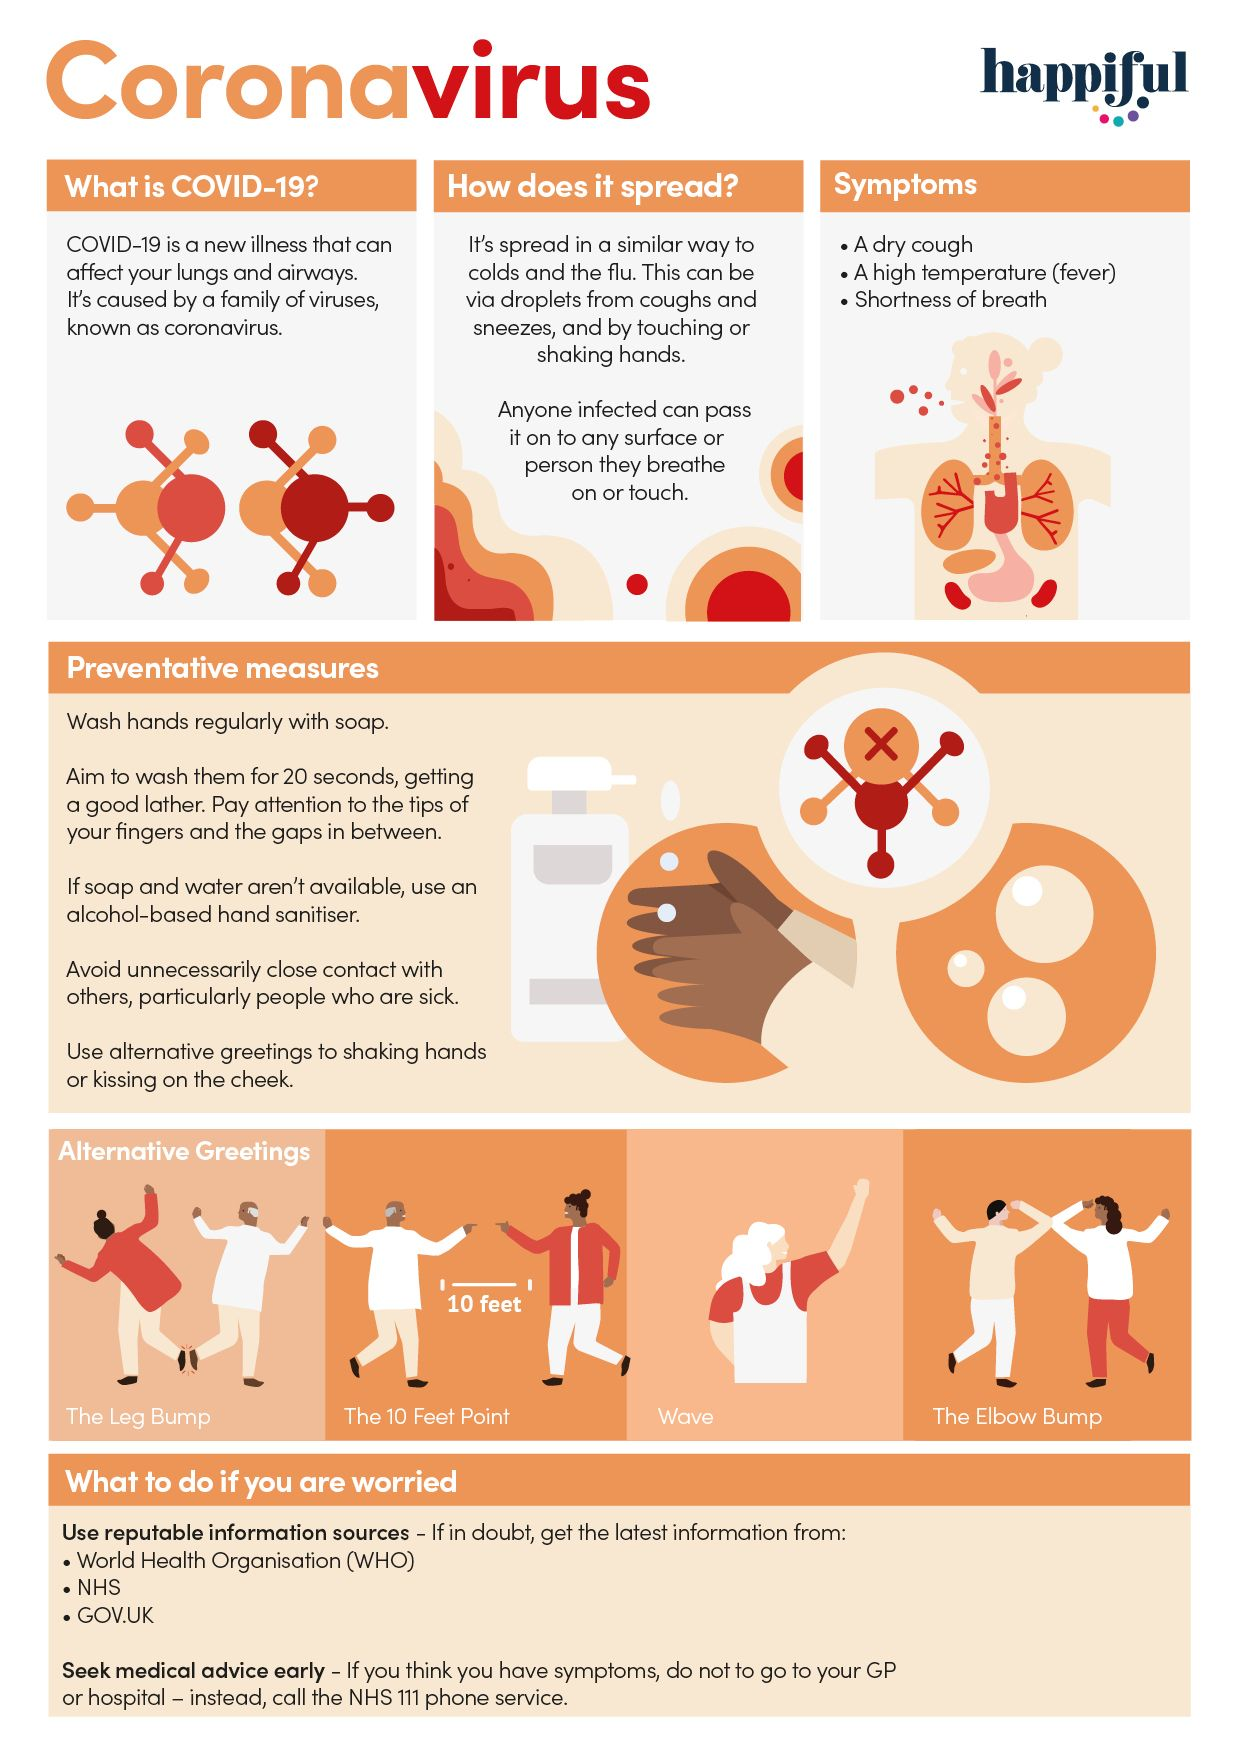 What is Coronavirus? Useful information about COVID-19, including symptoms, how it spreads, preventative measures, alternative greeting and what to do if you're worried.